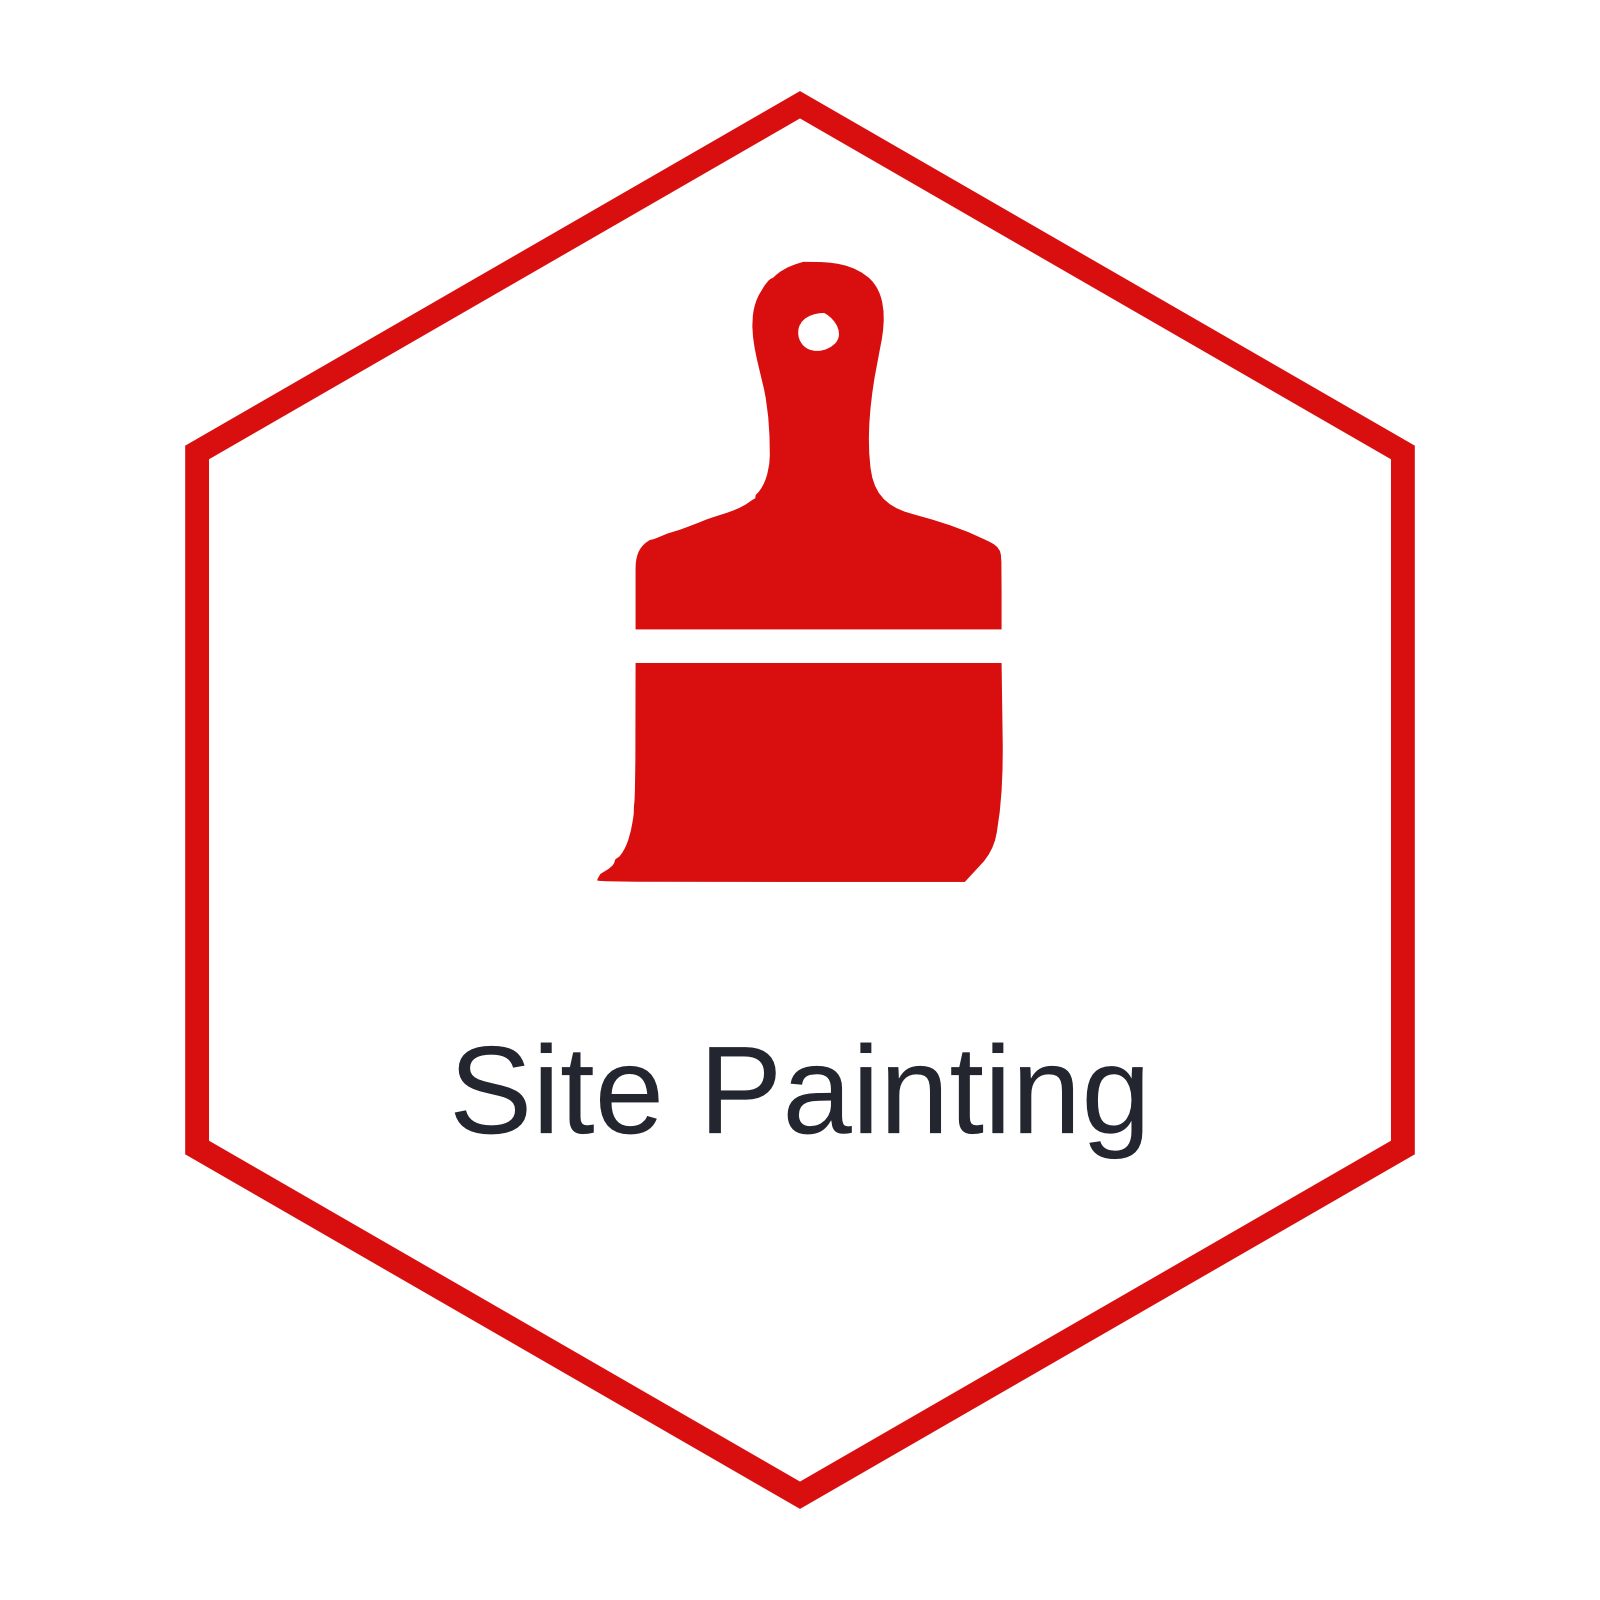 Peri Peri creative - LTS Structural-icon-Site Painting